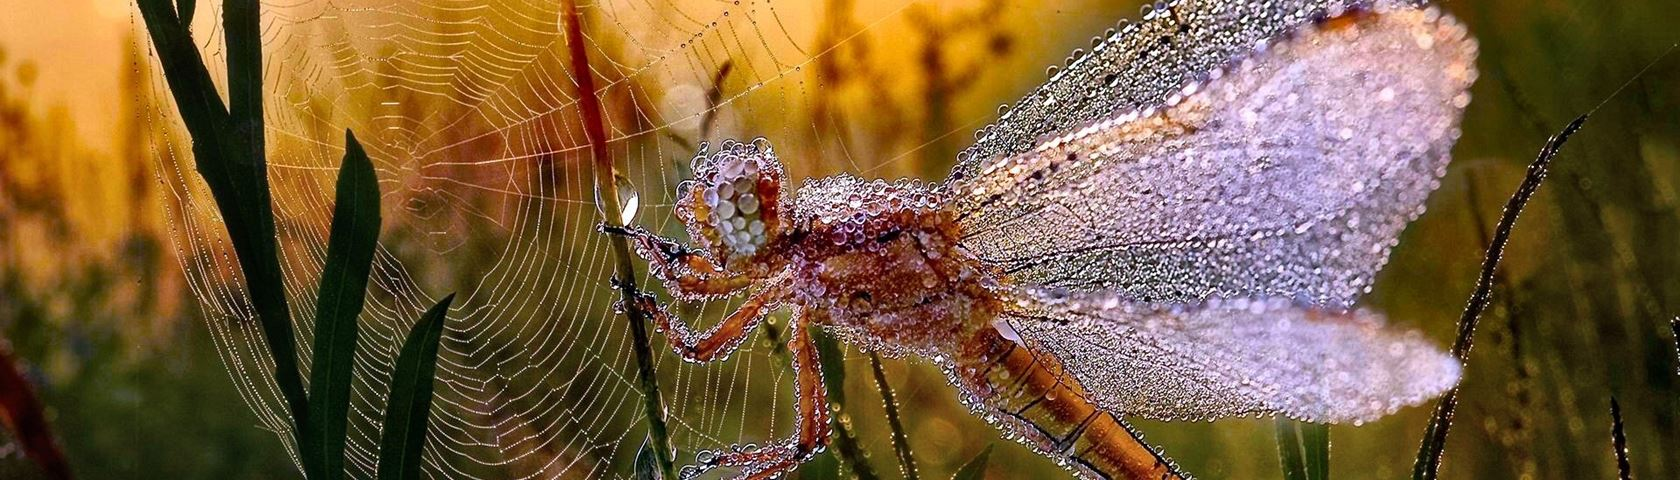 Jewel Encrusted Dragonfly